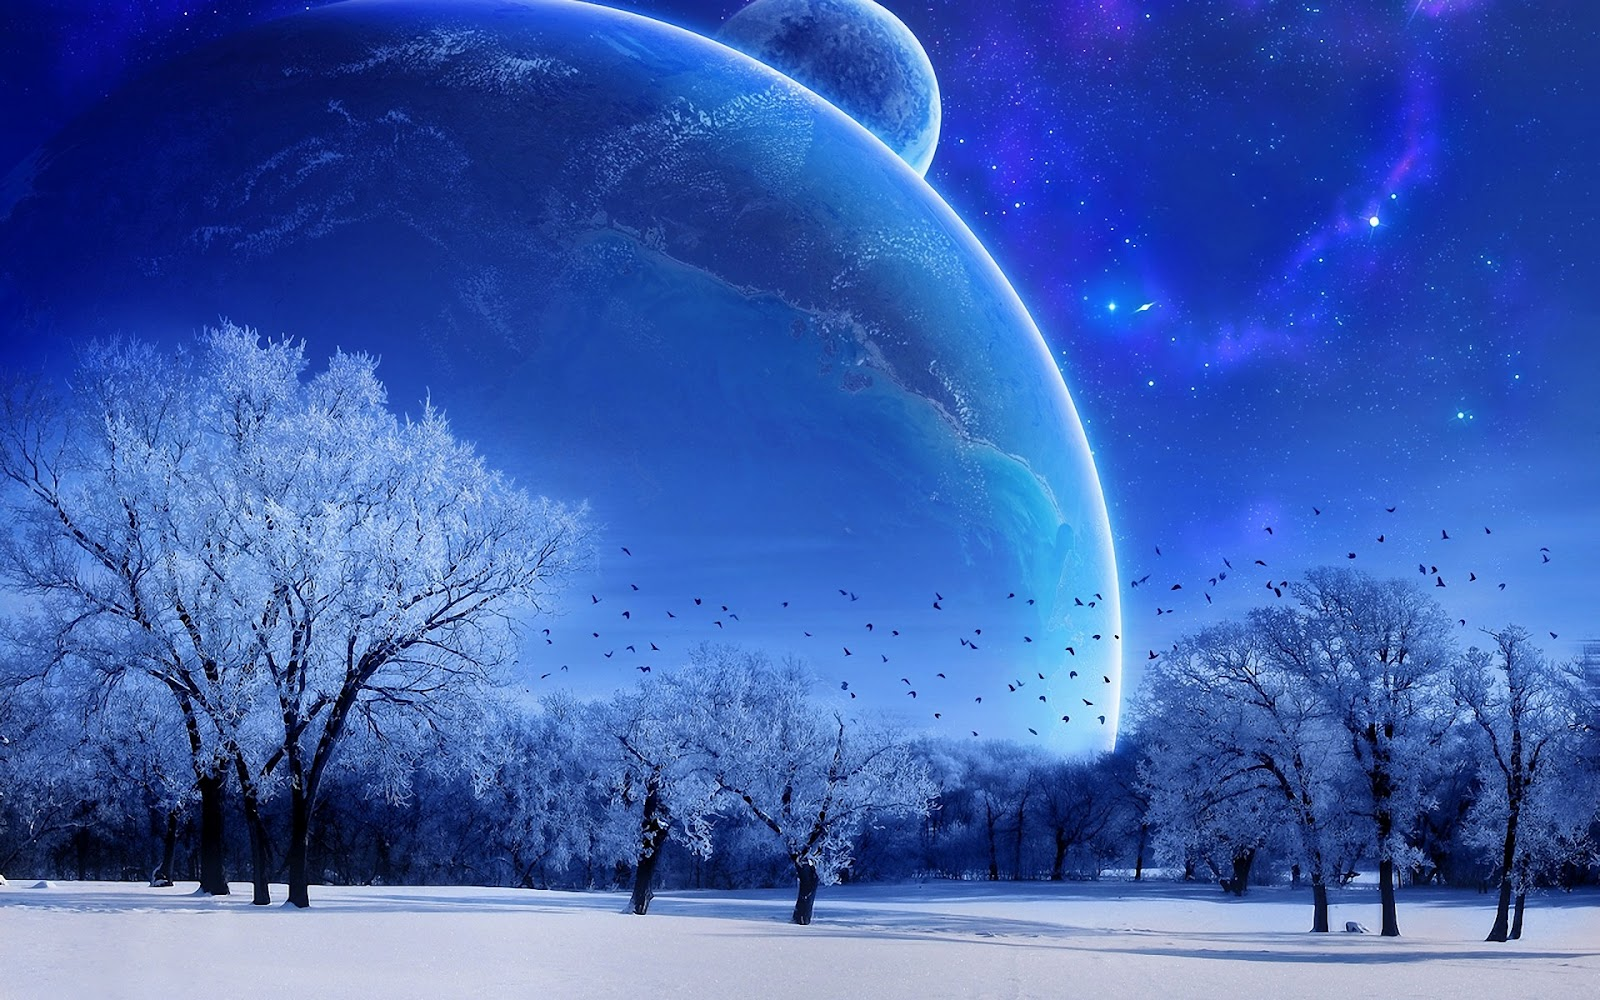 HD Space Wallpaper Amazing Wallpapers 1600x1000